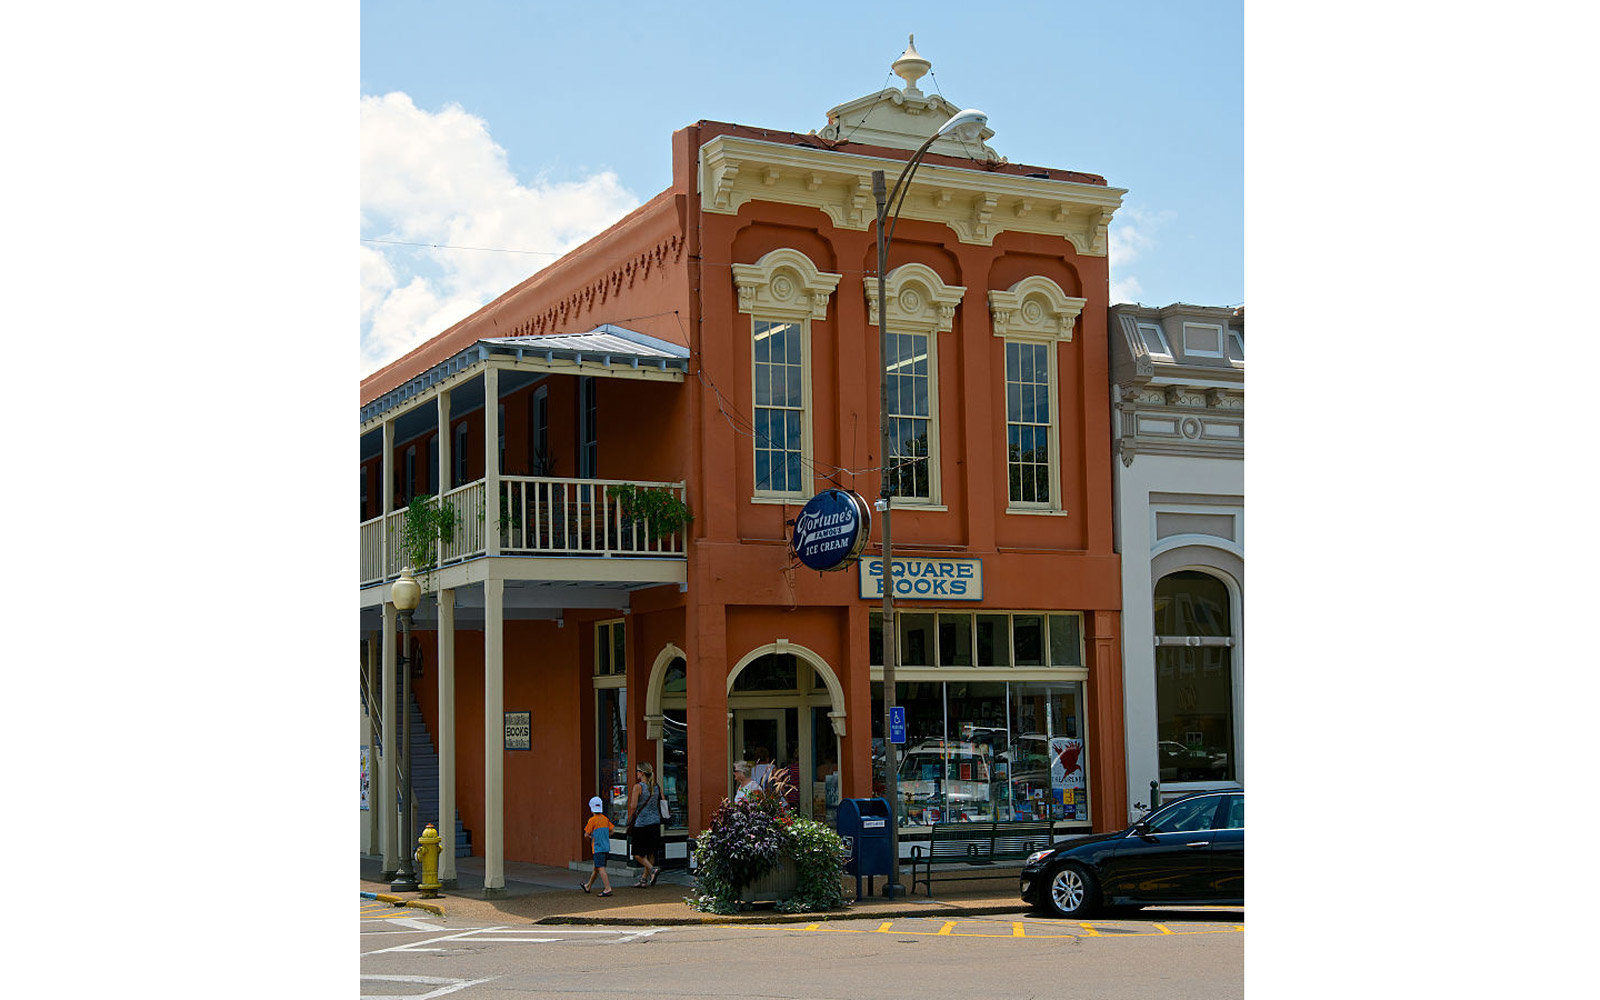 Oxford. Mississippi 7-23-2014 The  Square Books  bookstore in Oxford Mississippi. Owned by Lisa and Richard Howorth. Credit: Mark Reinstein (Photo by Mark Reinstein/Corbis via Getty Images)